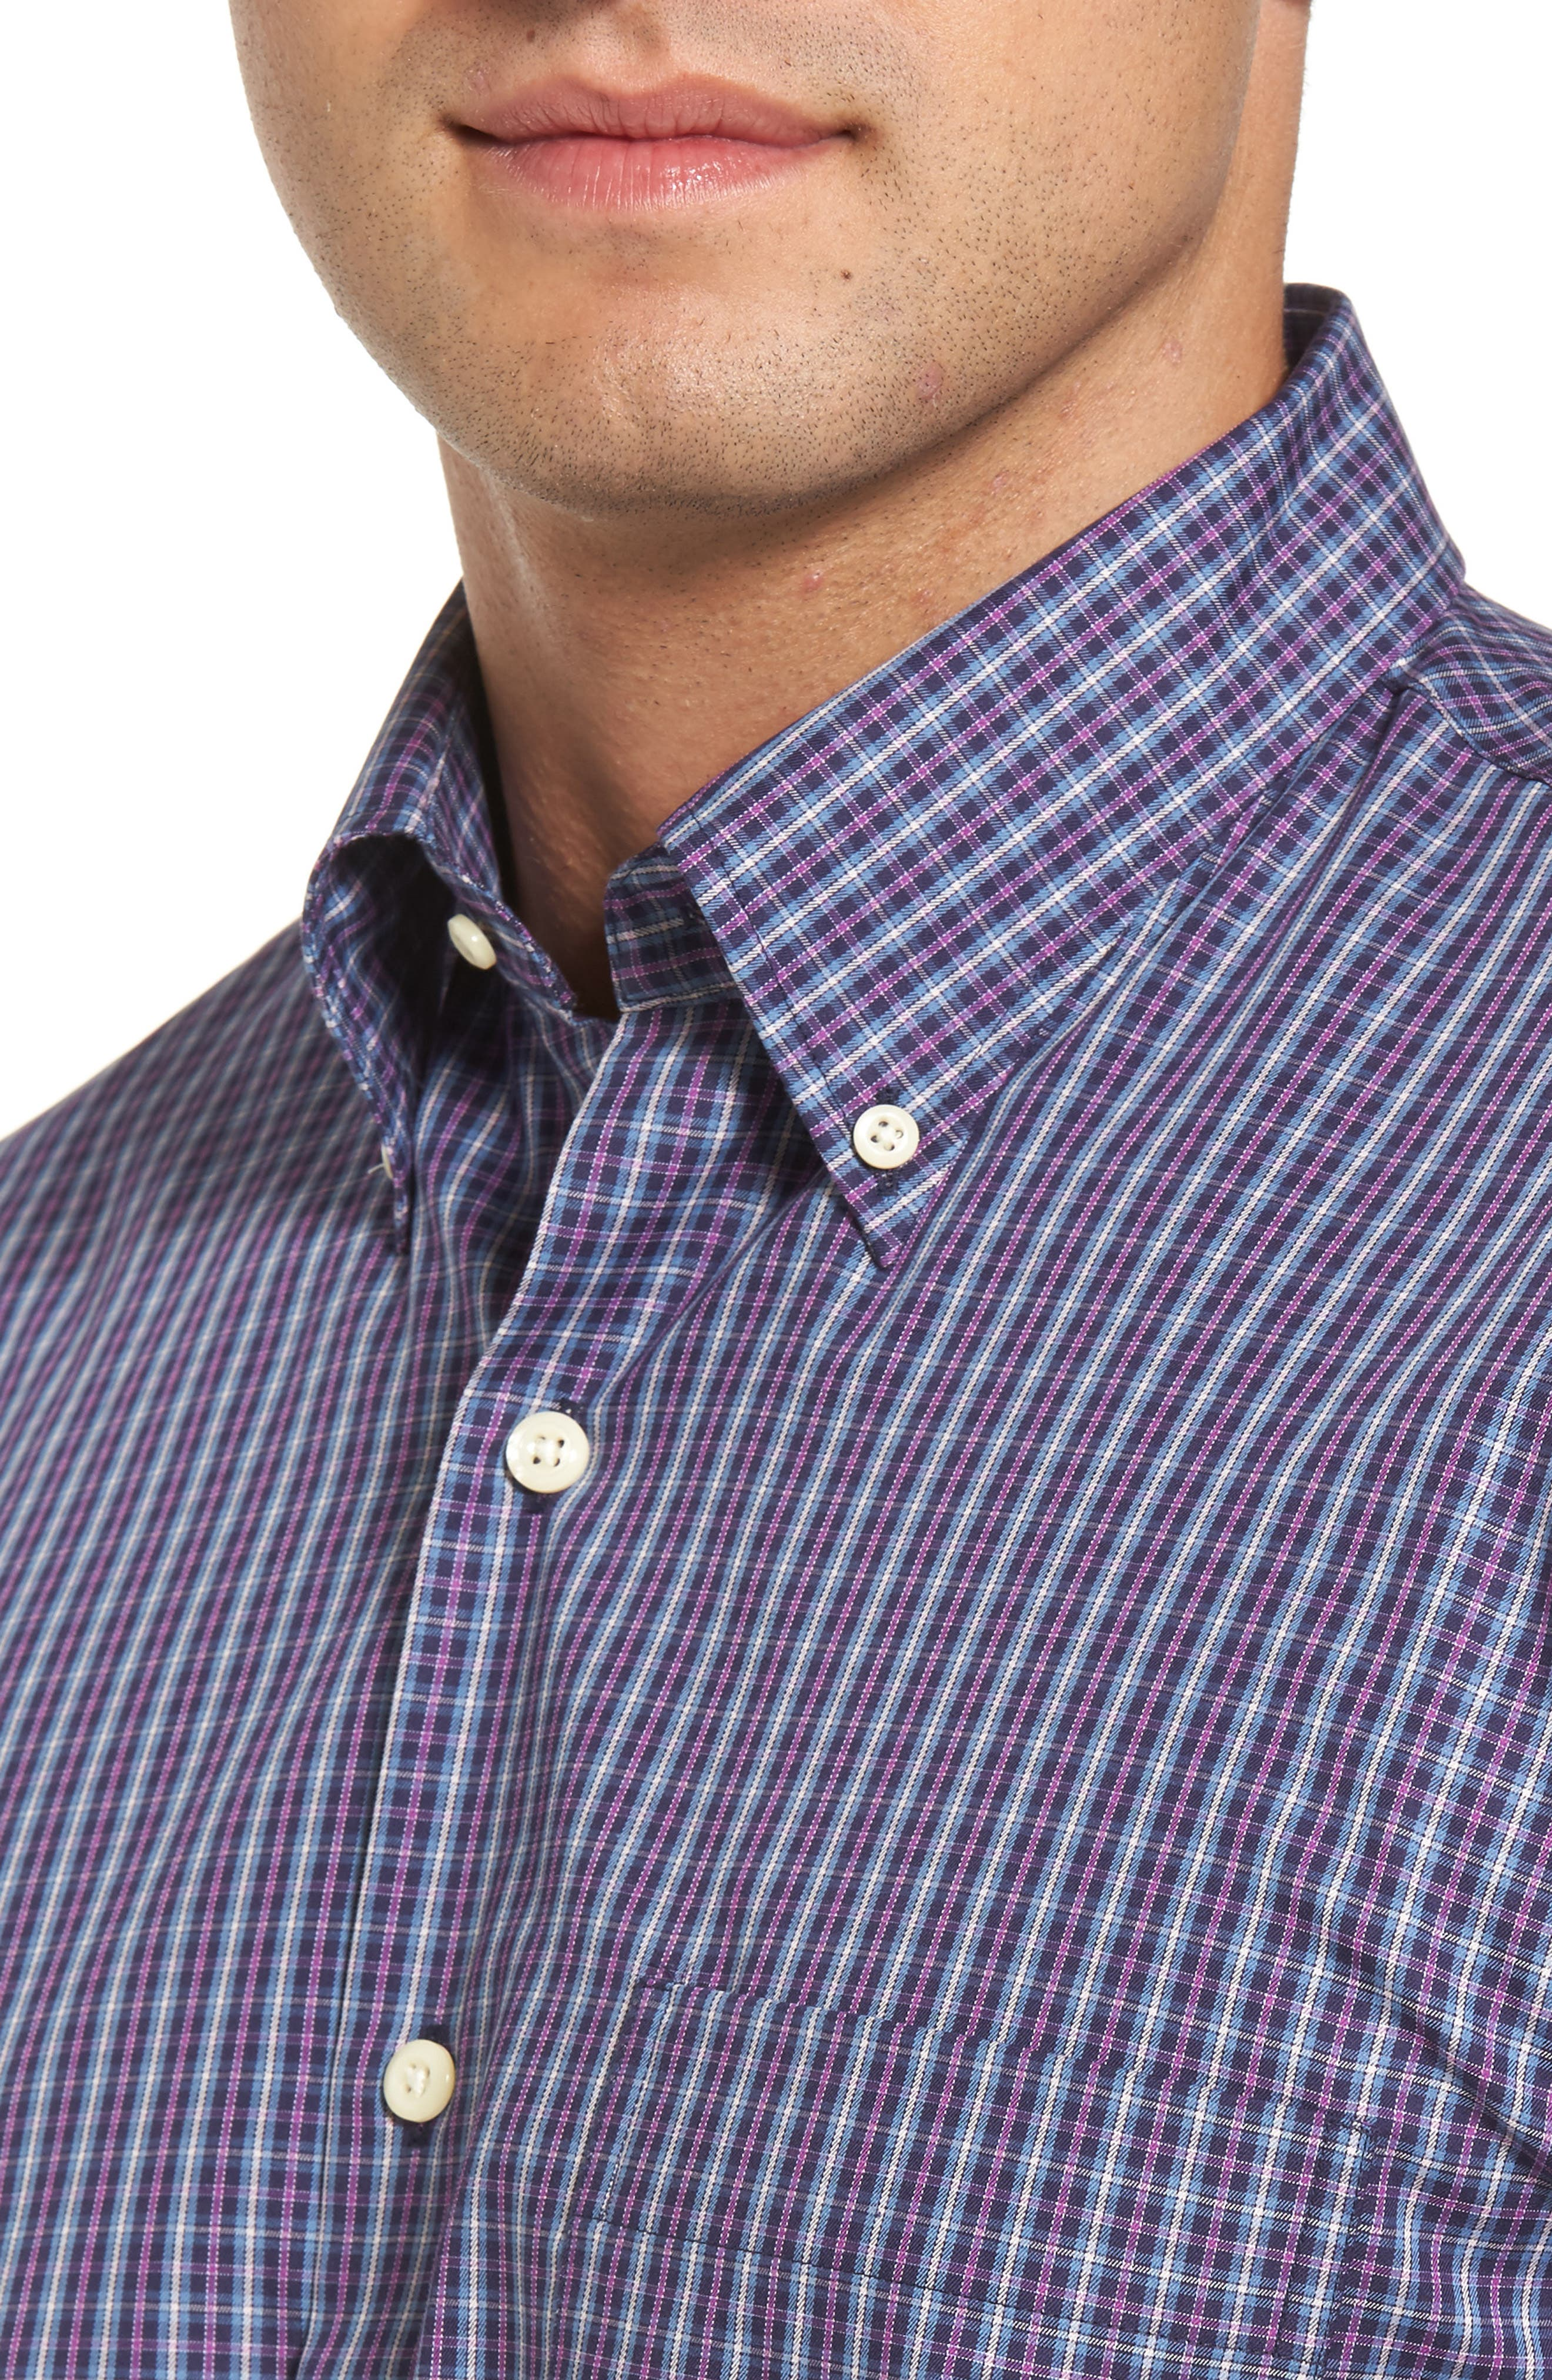 Hillock Regular Fit Plaid Sport Shirt,                             Alternate thumbnail 3, color,                             Moon Blue